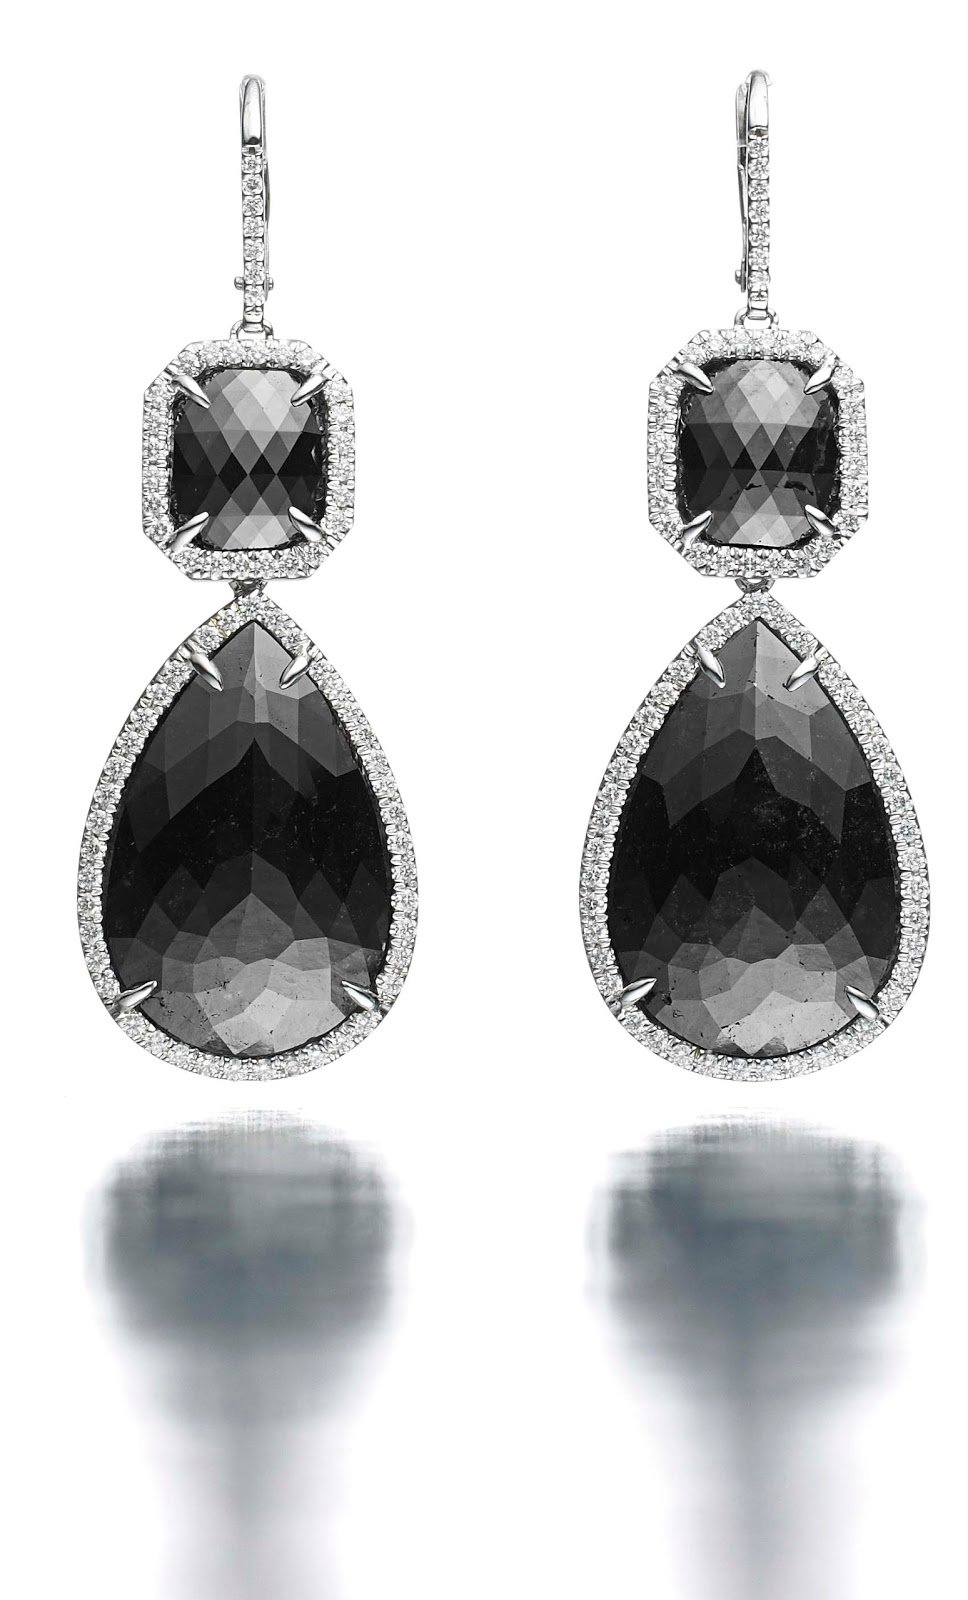 The Best She Fashion Club Black Diamond Earrings Pictures